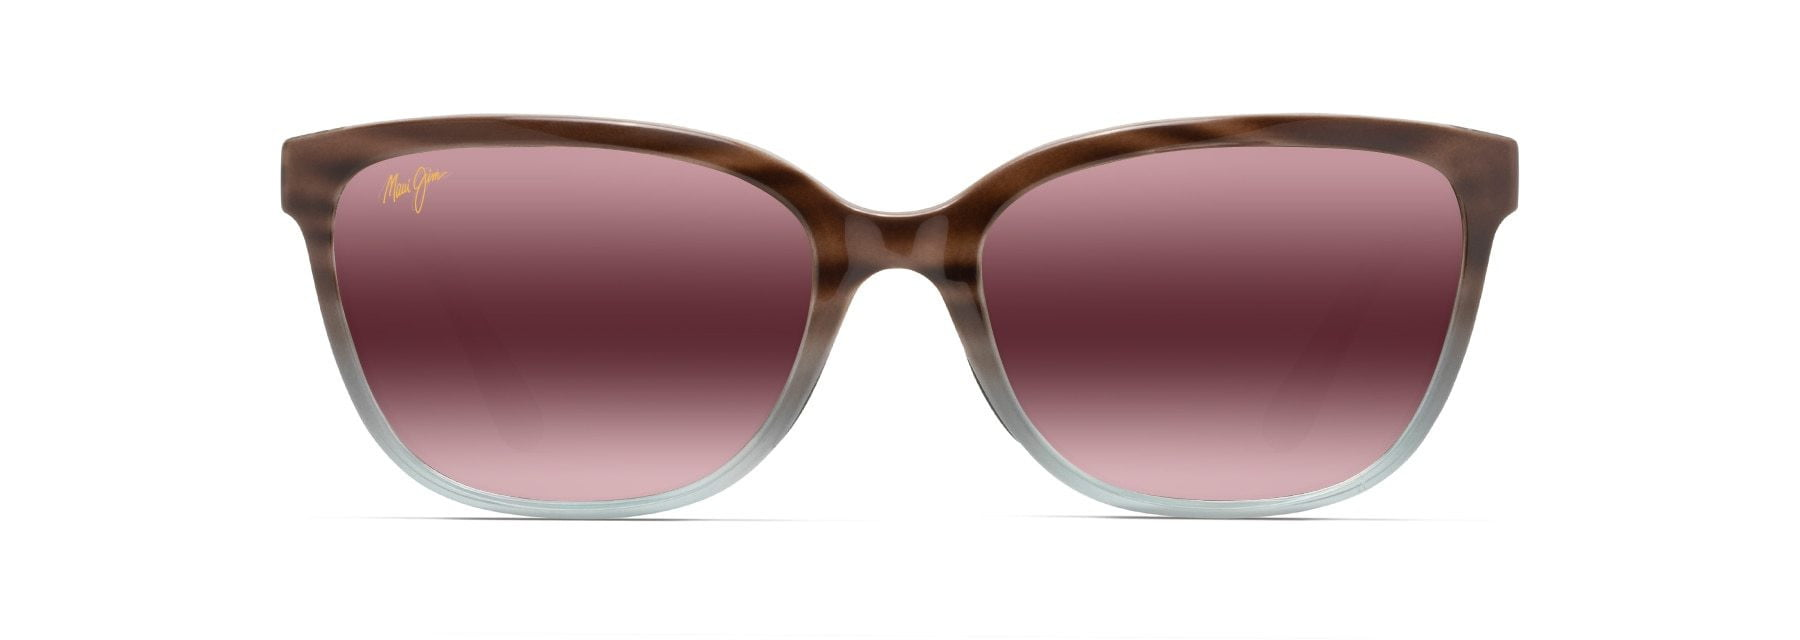 MyMaui Honi MM758-018 Sunglasses